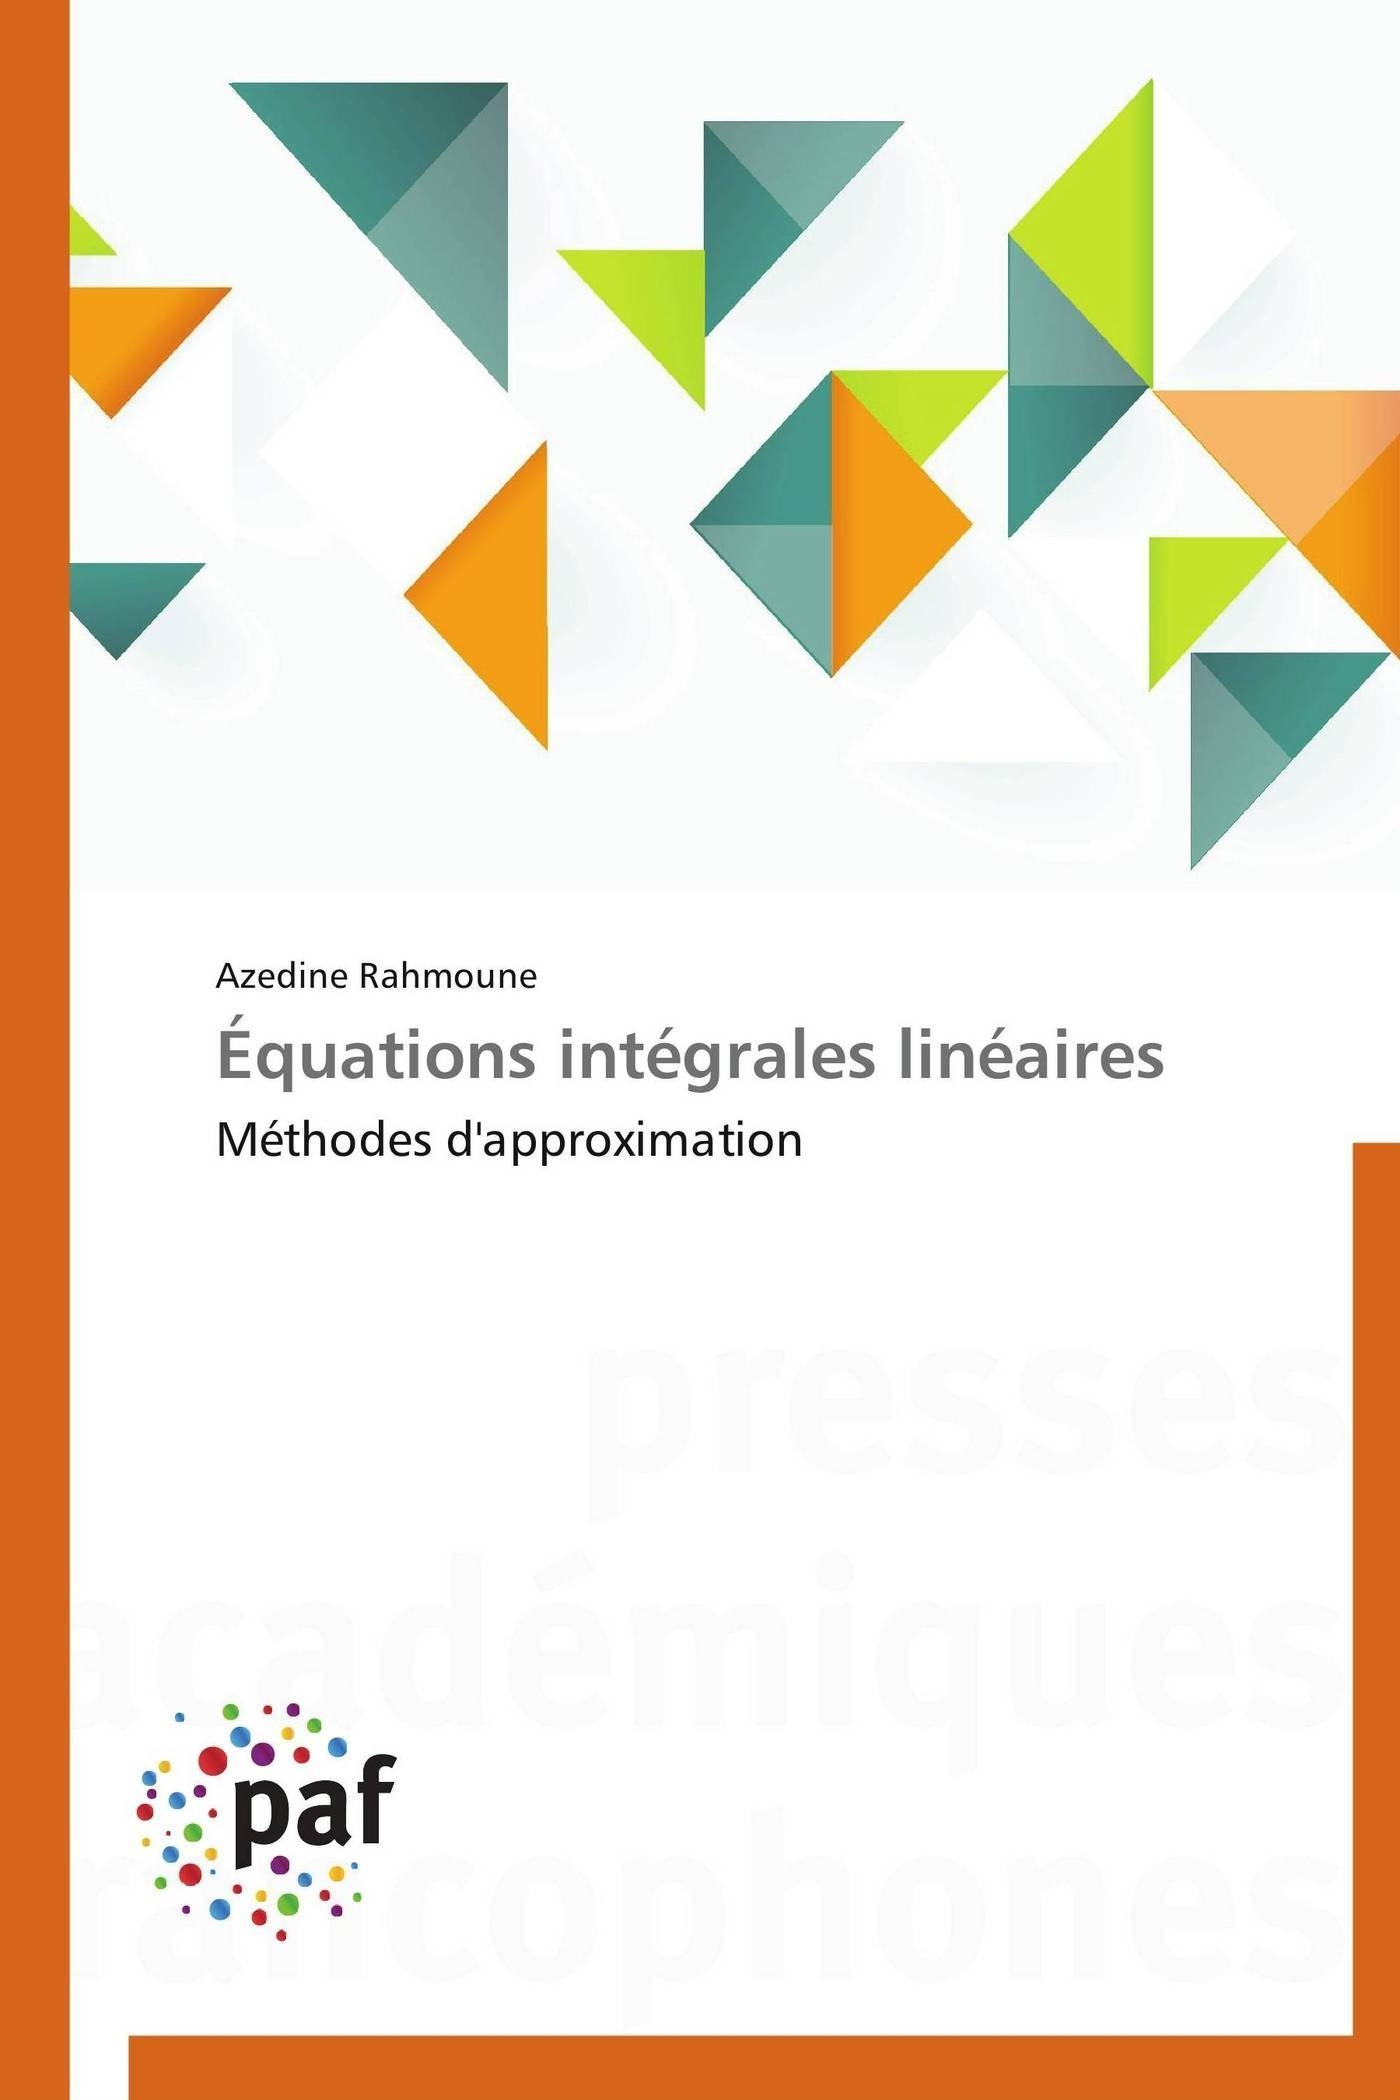 EQUATIONS INTEGRALES LINEAIRES